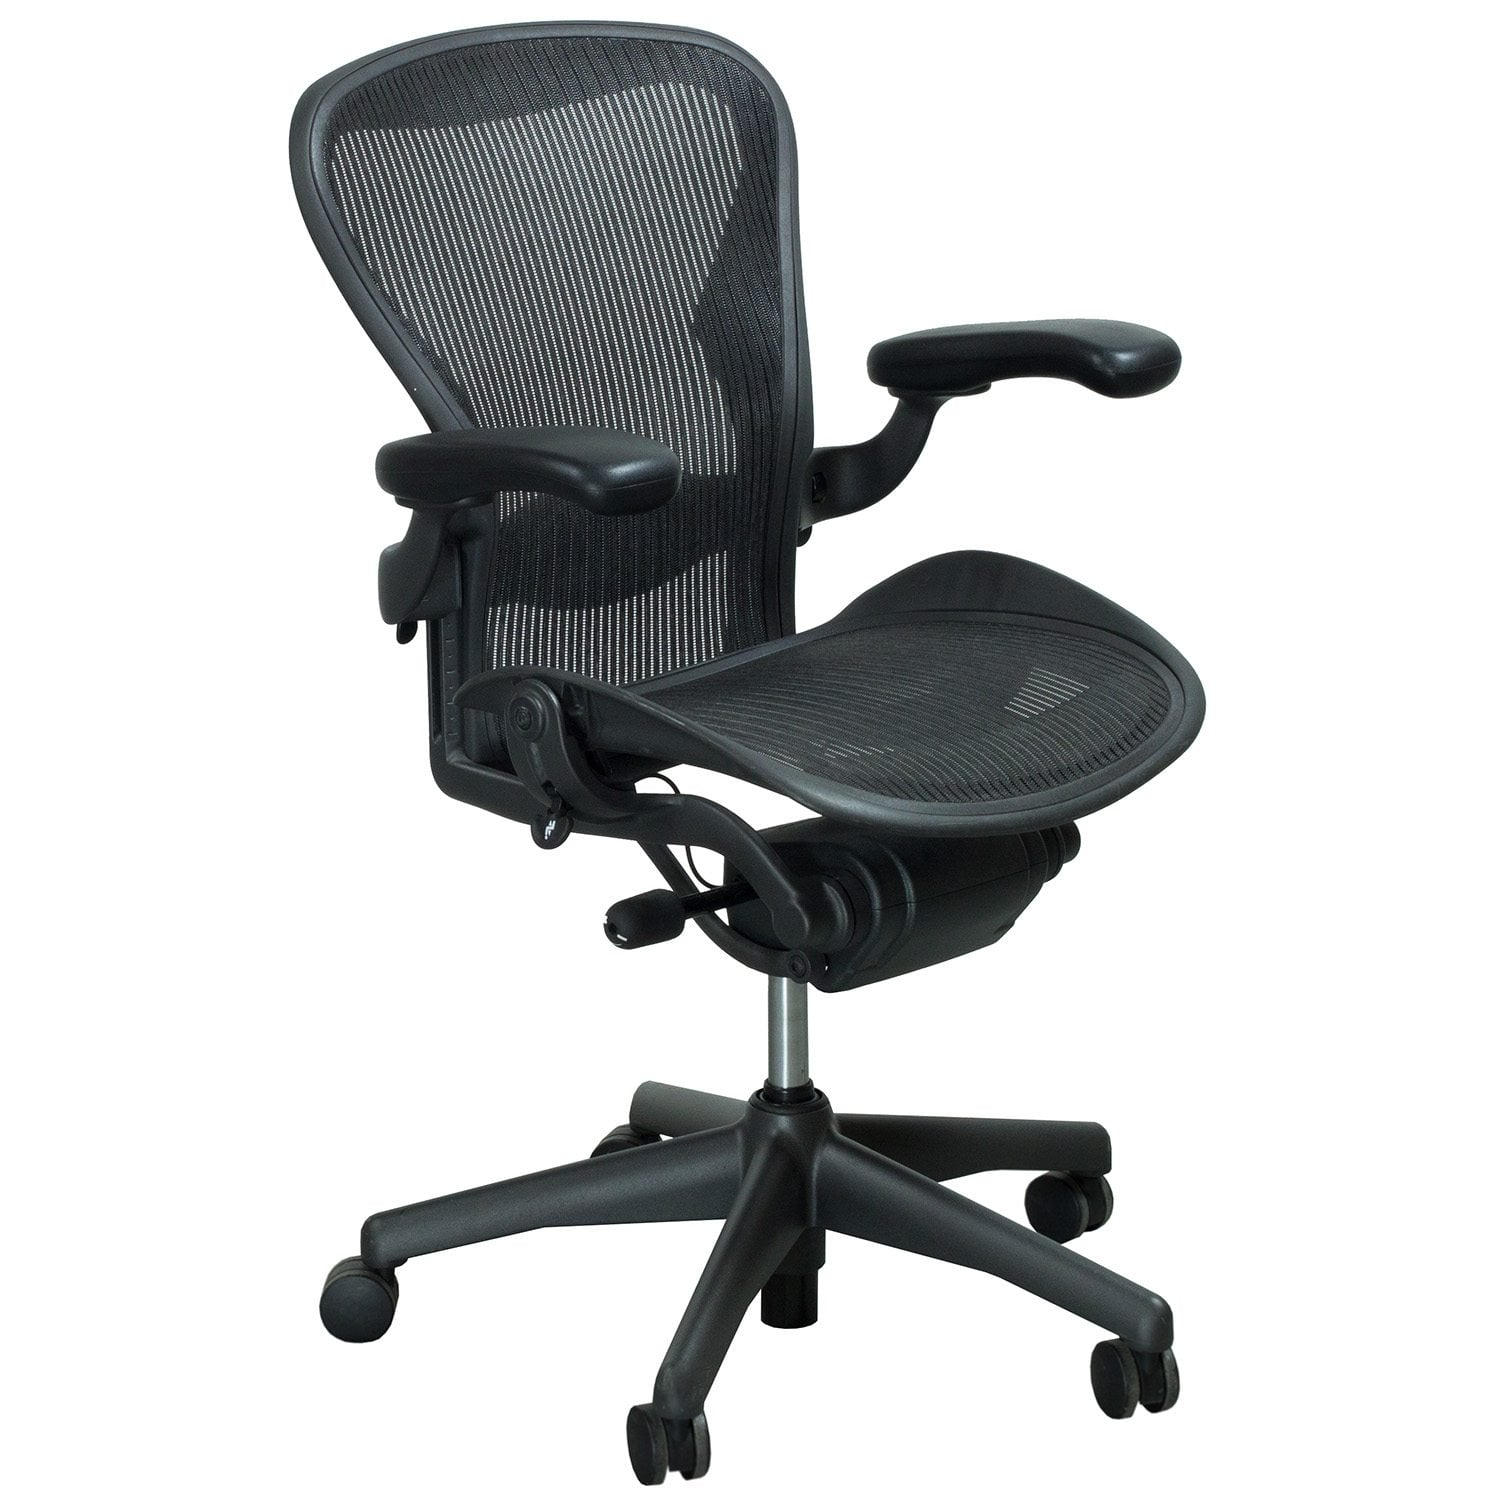 Herman Miller Aeron Used Size A Full Function Task Chair